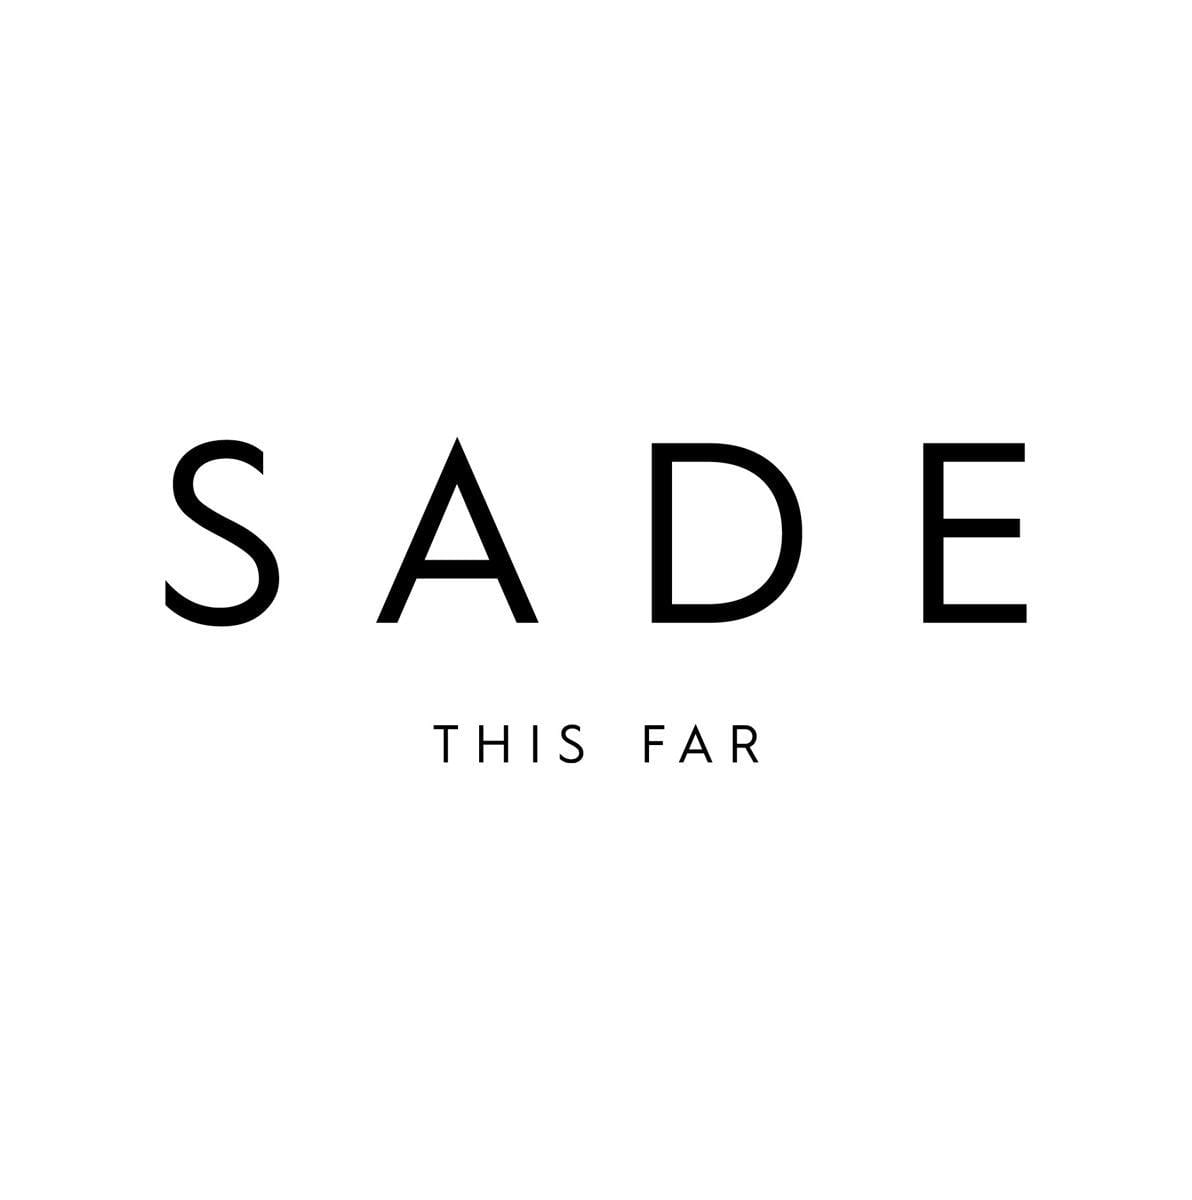 Sade - This Far [6LP Box] (180 Gram, remastered, original artwork, laser etched piece) - Urban Vinyl | Records, Headphones, and more.